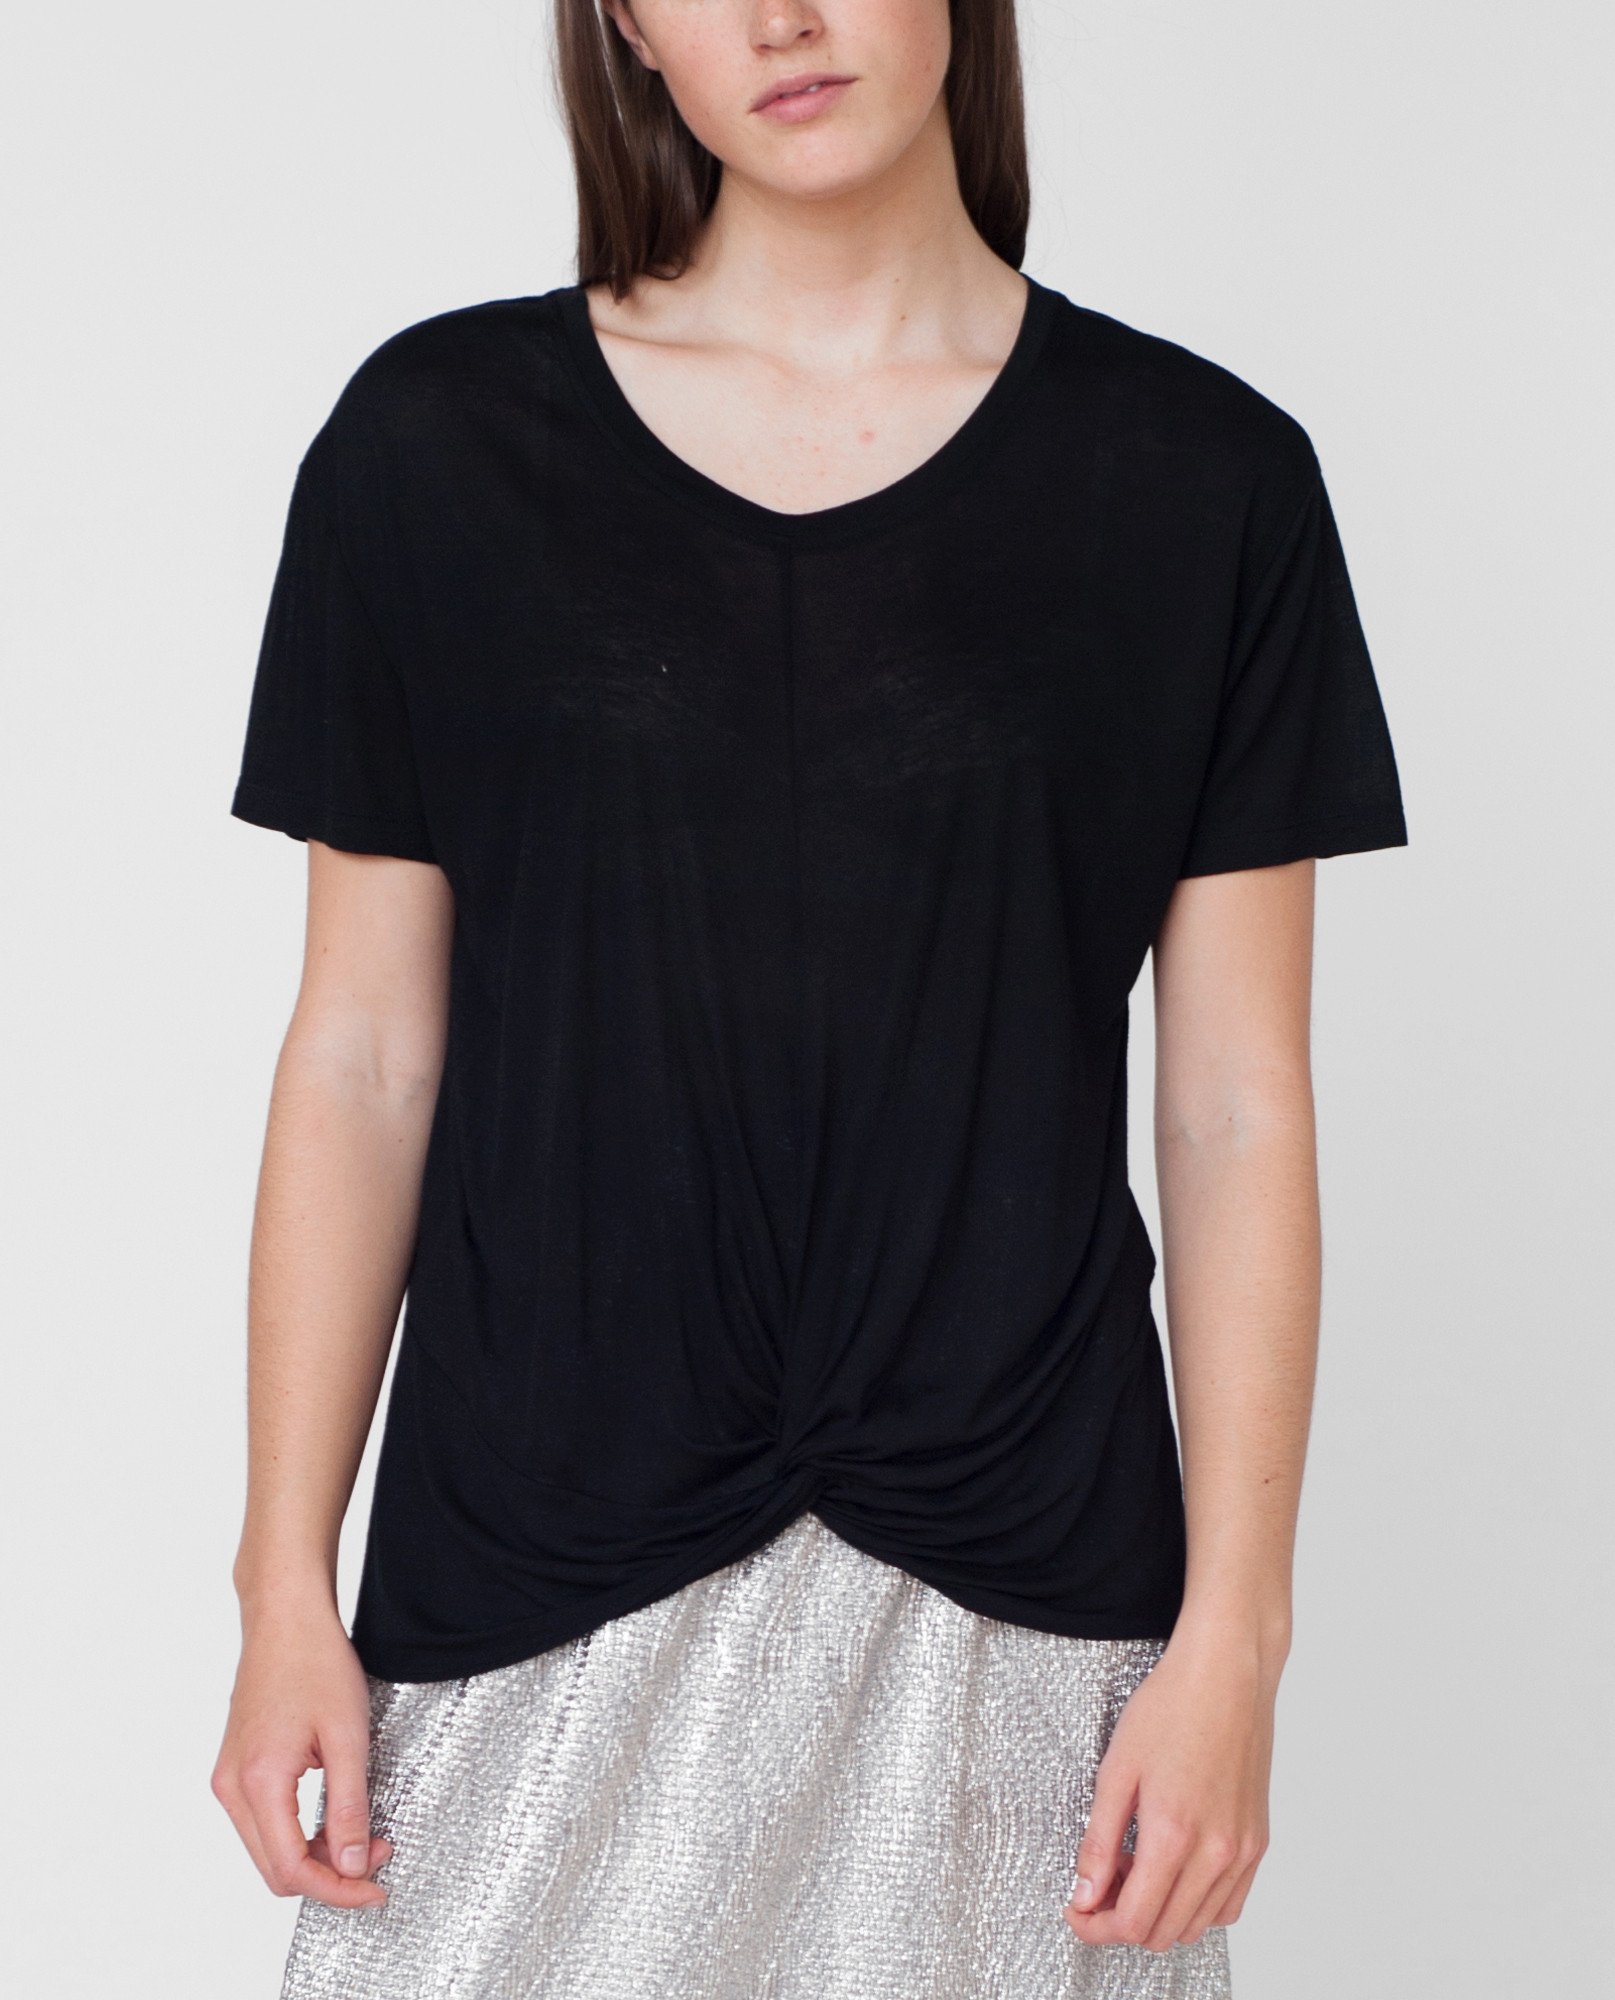 MEGAN Bamboo Top from Beaumont Organic